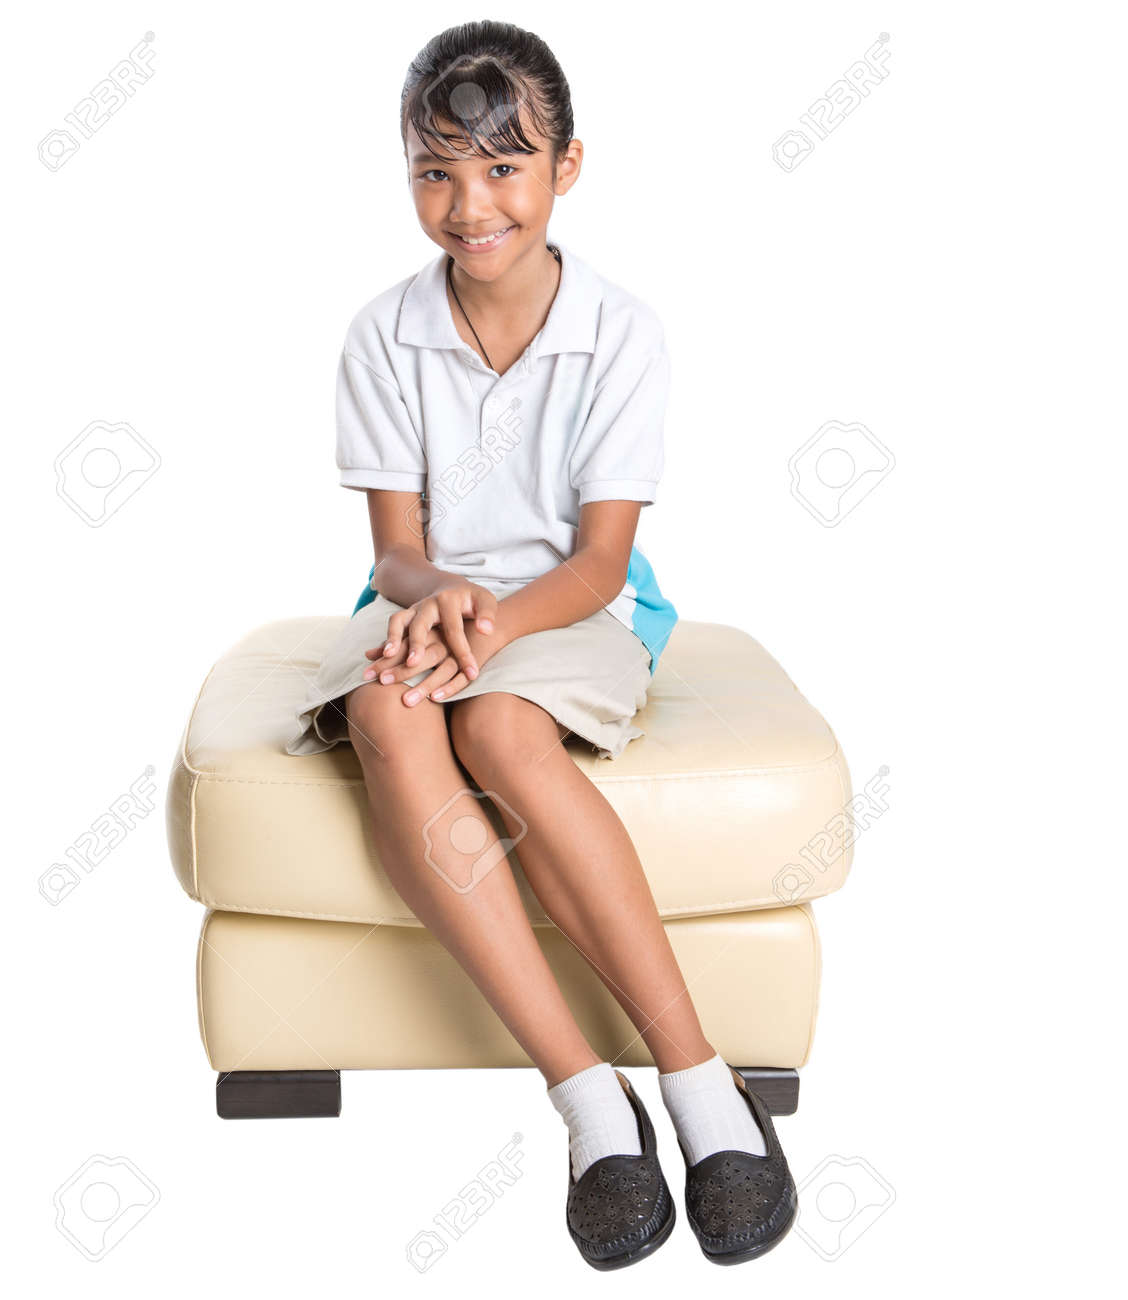 Stock Photo Young Asian School Girl In School Uniform Over White Background